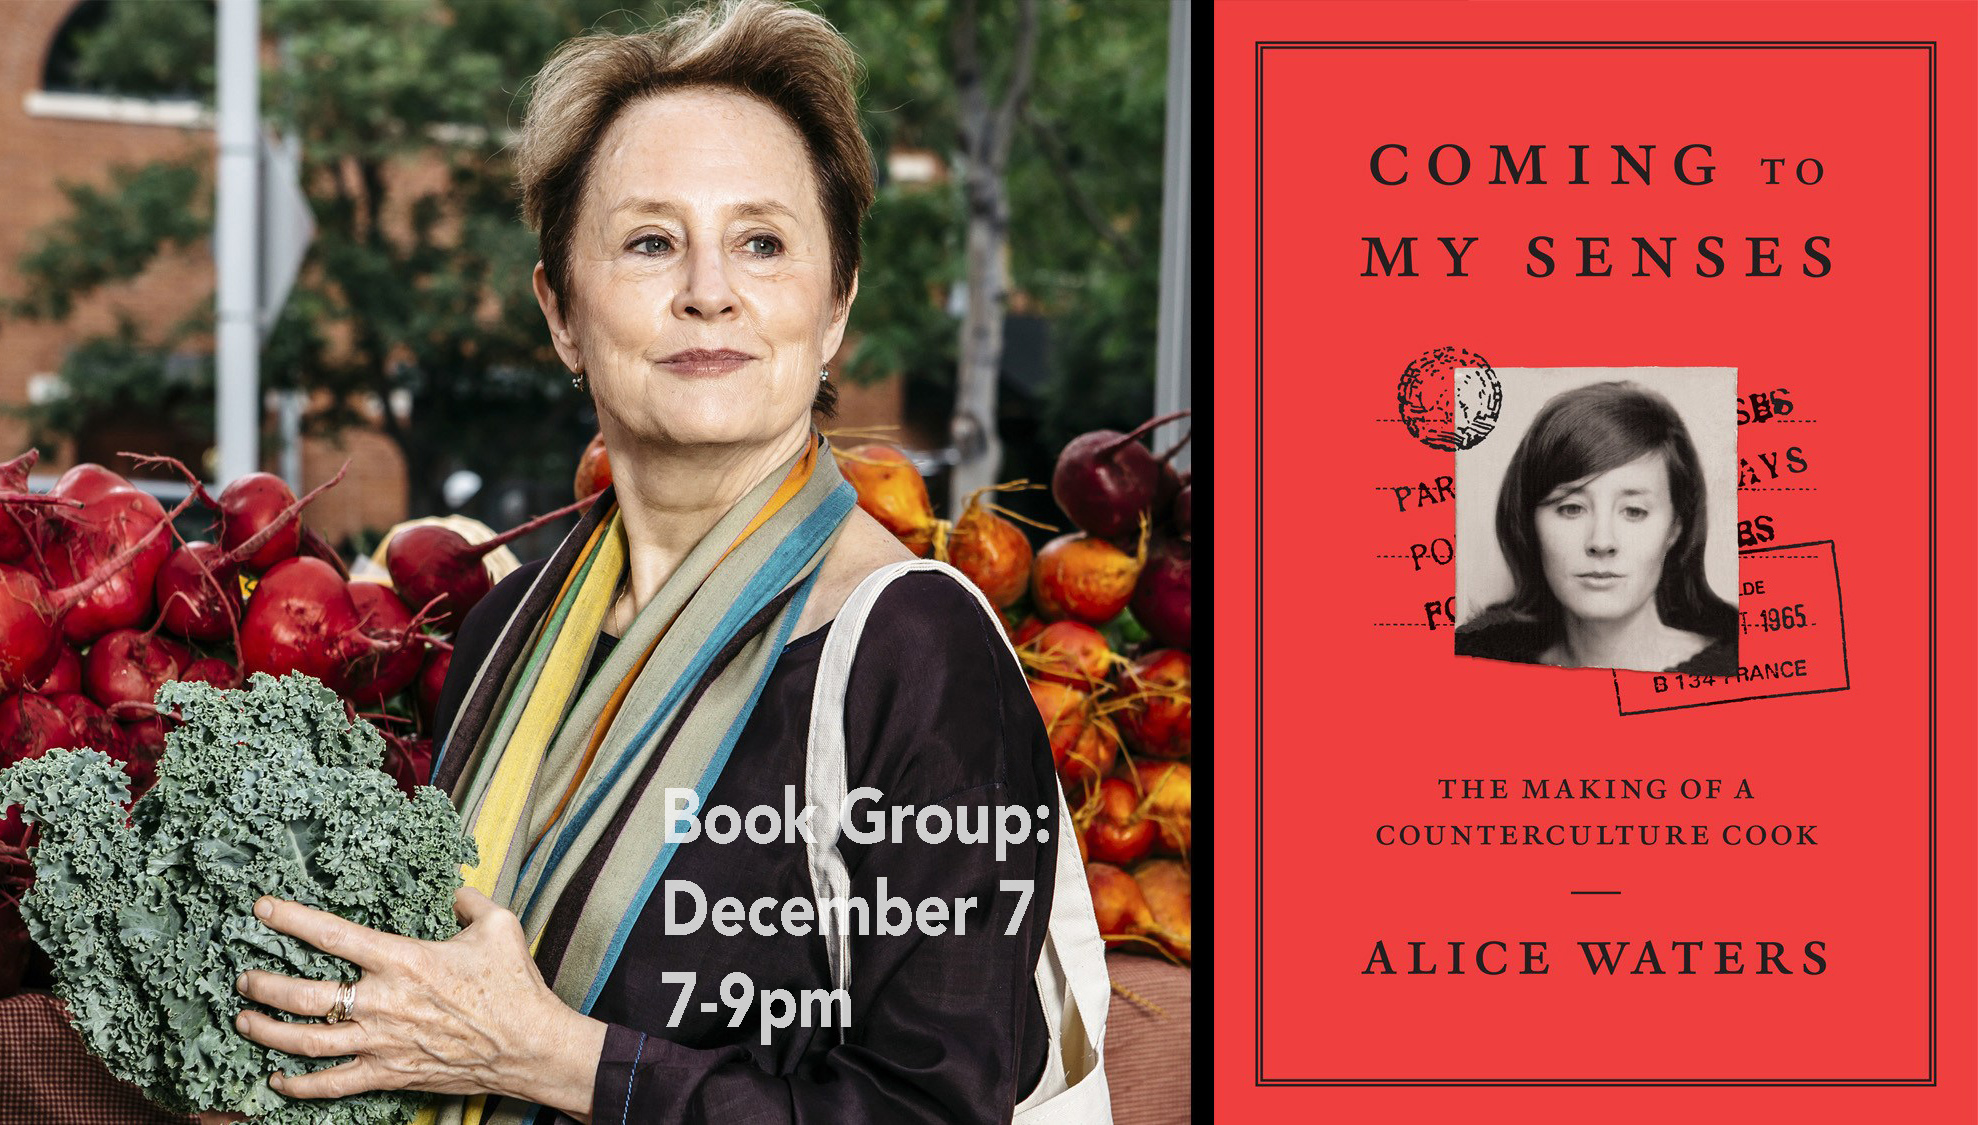 Book Group: Coming to My Senses: The Making of a Counterculture Cook, by Alice Waters